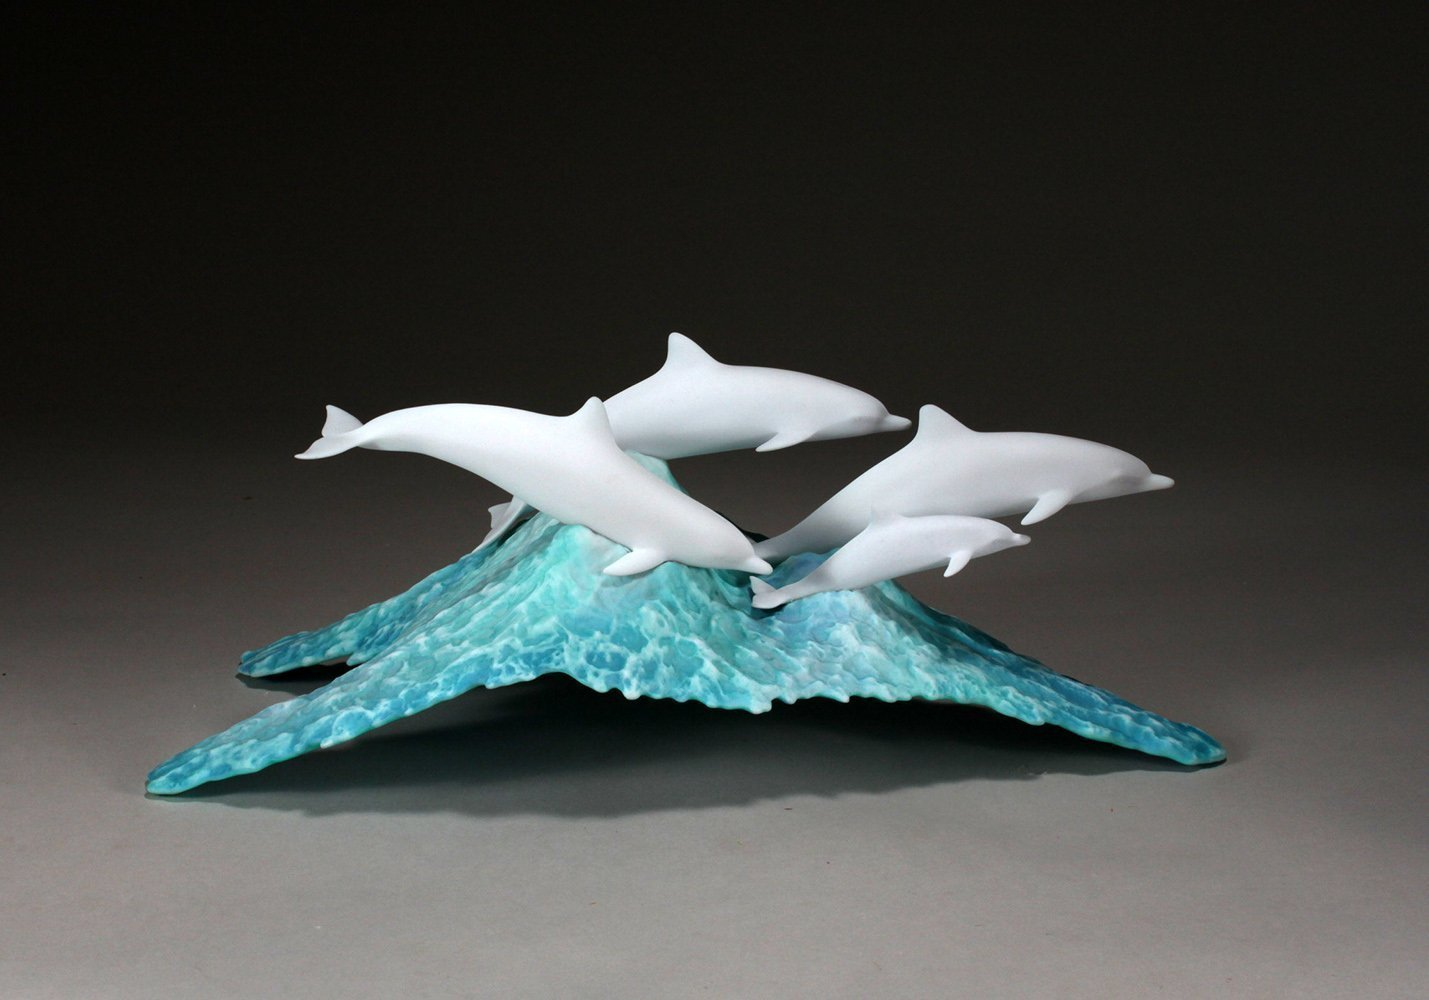 Dolphin School Sculpture on Blue Wave by John Perry Statue Airbrushed 11in Long